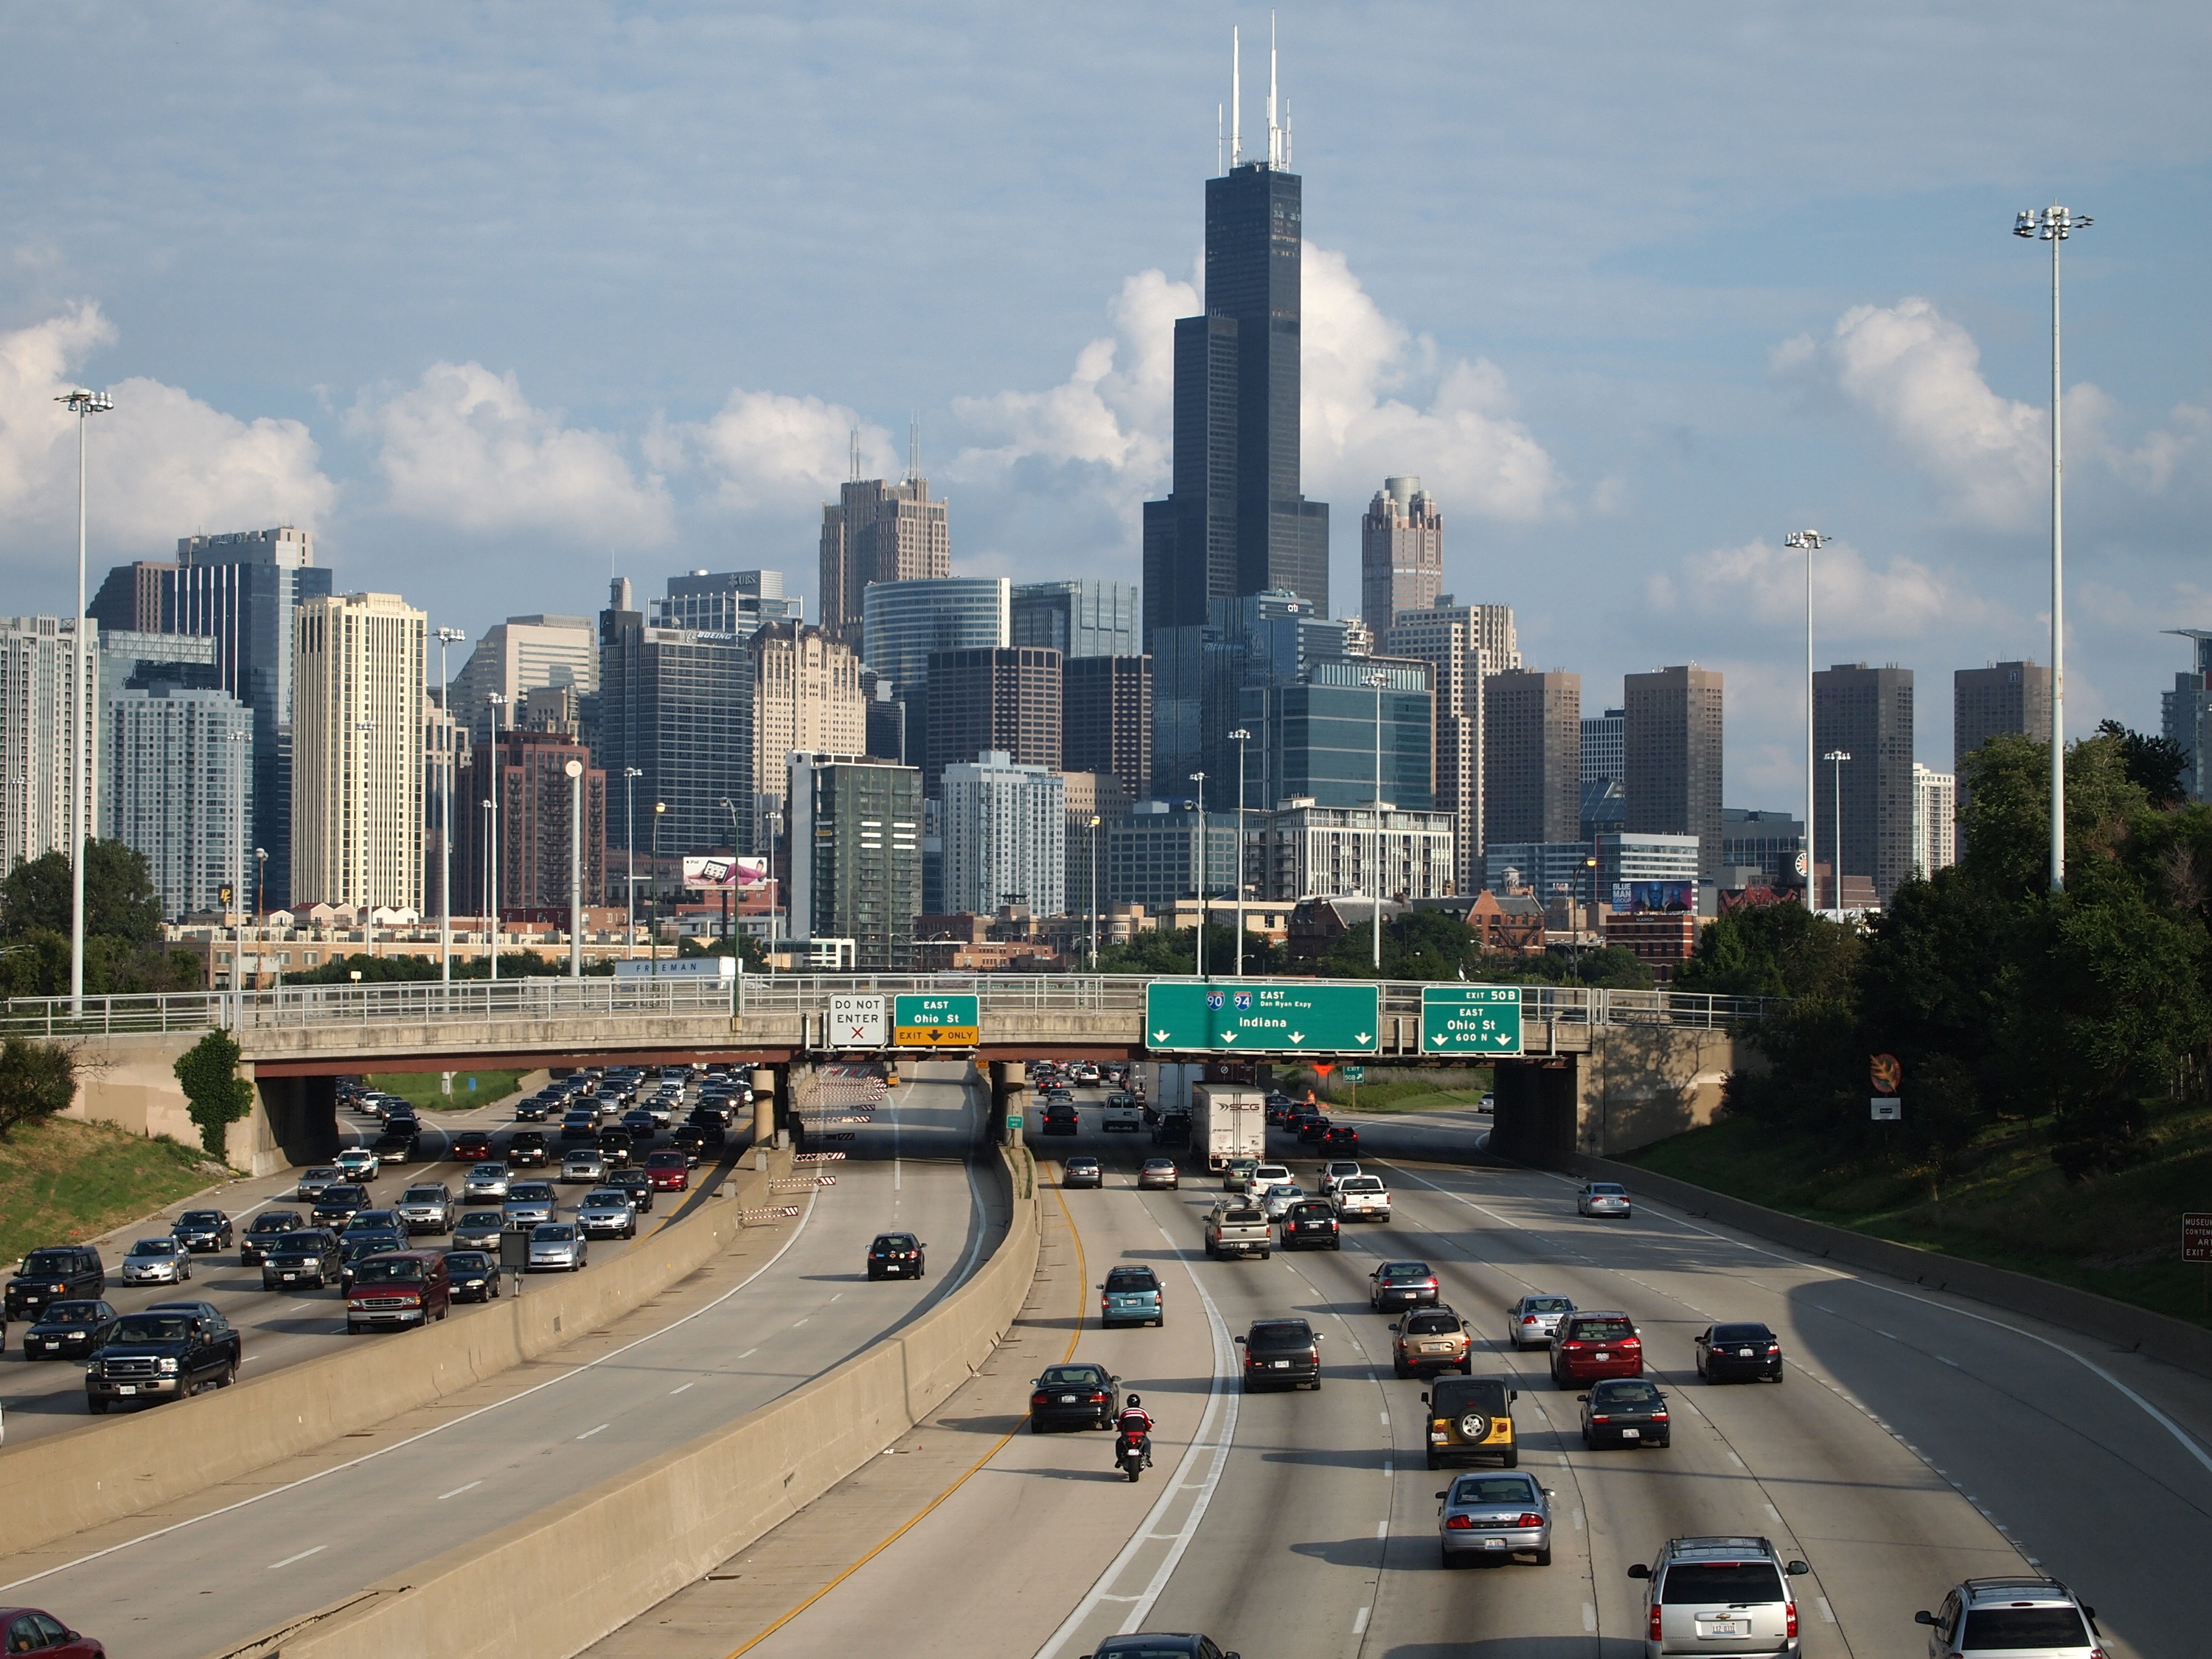 Chicago has a serious traffic problem, according to a new study